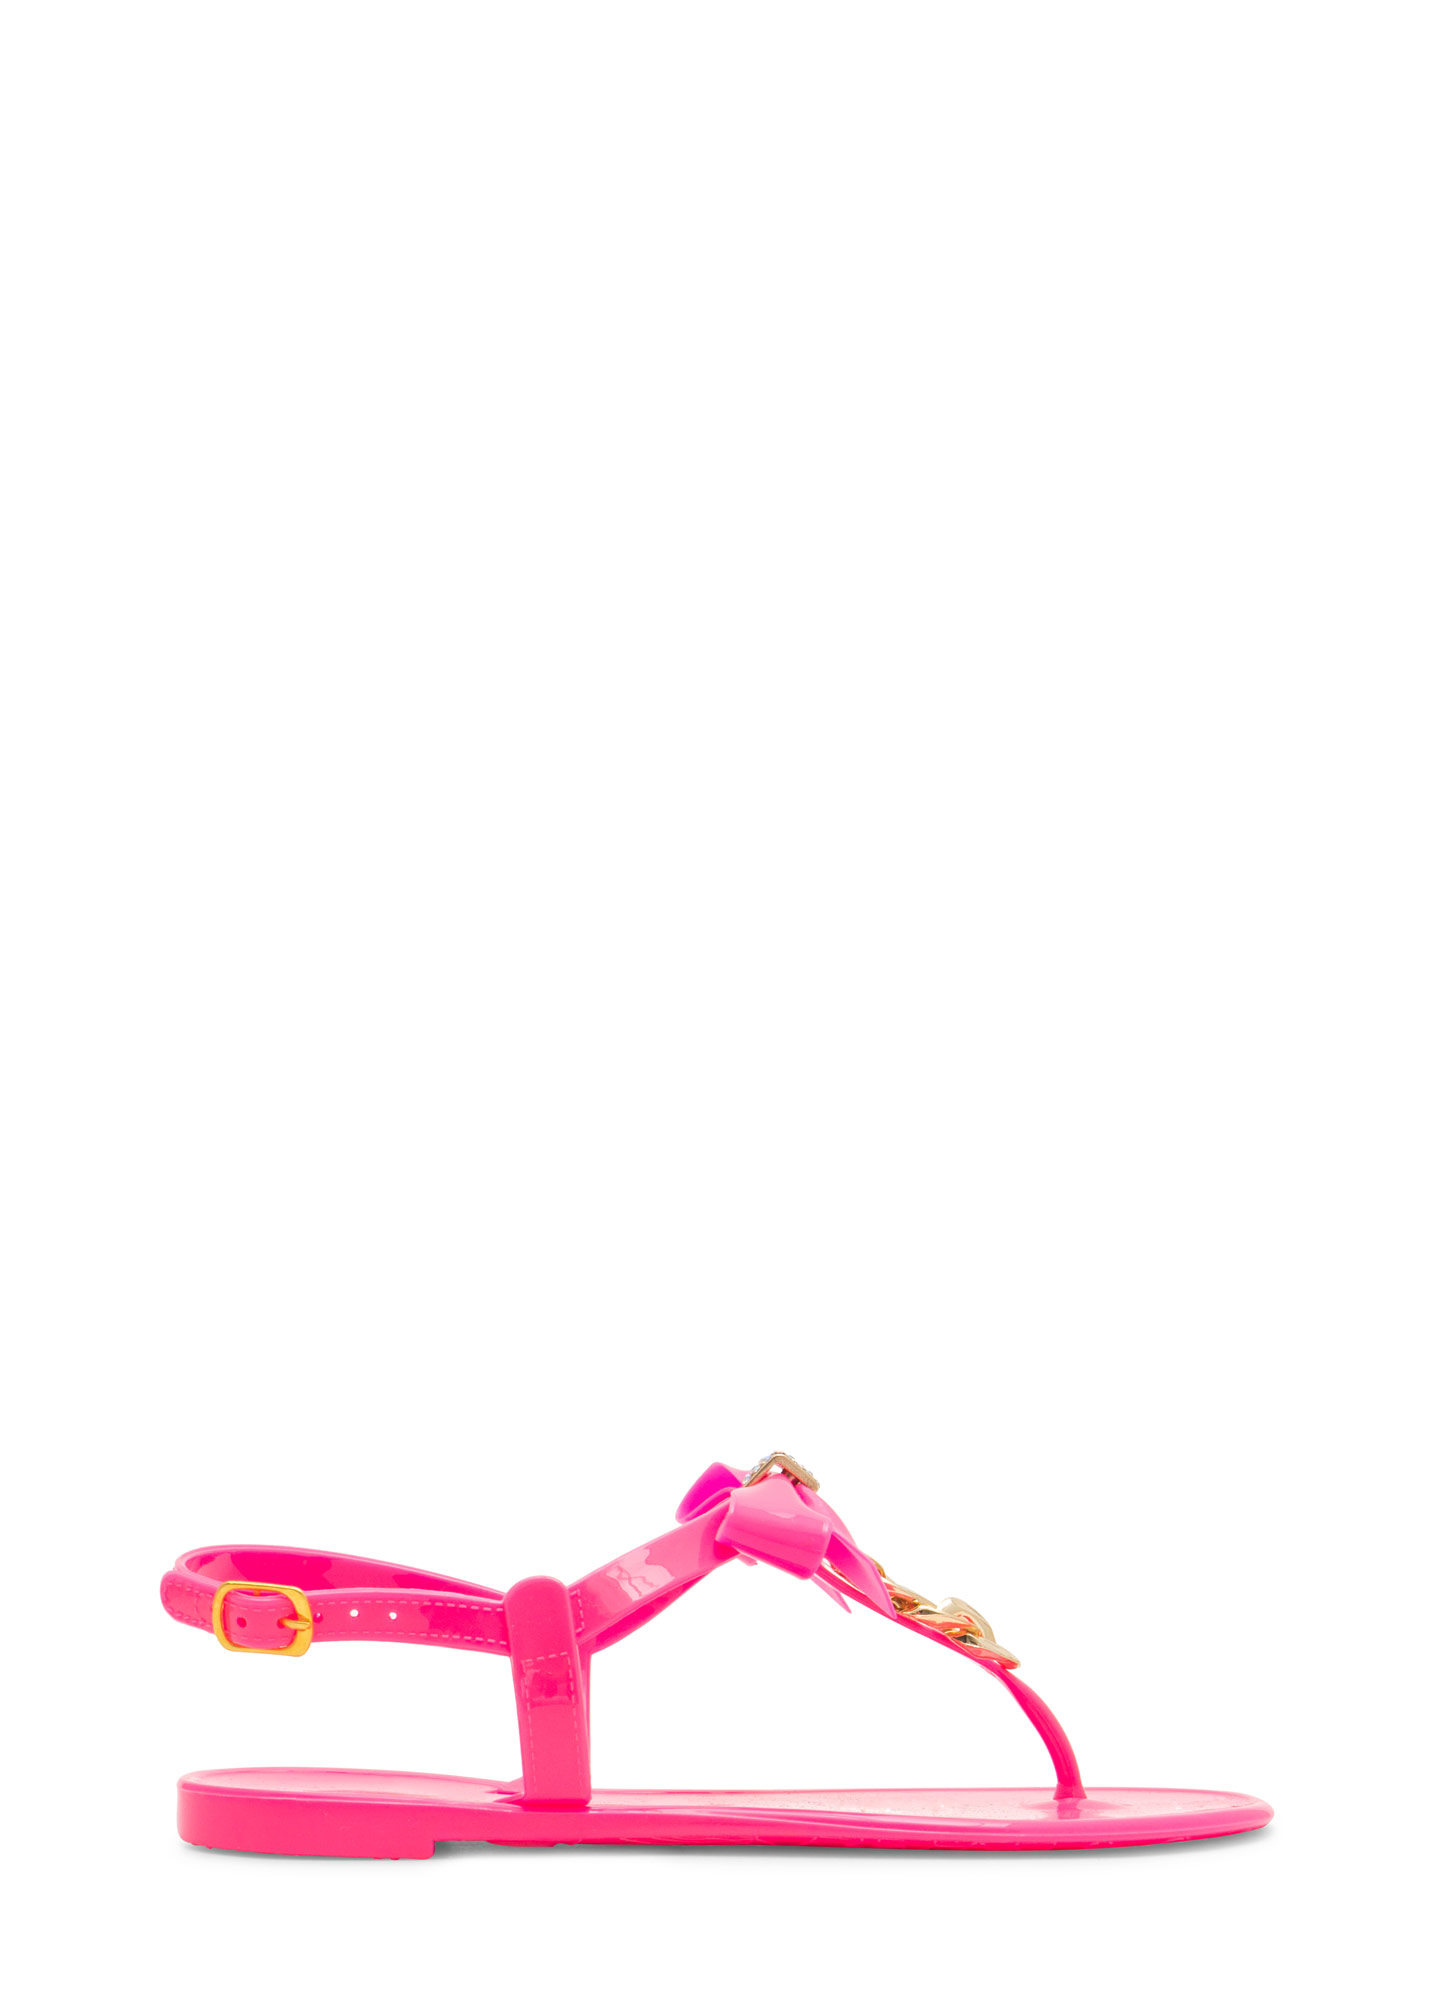 Bow 'N Chain Jelly Thong Sandals HOTPINK